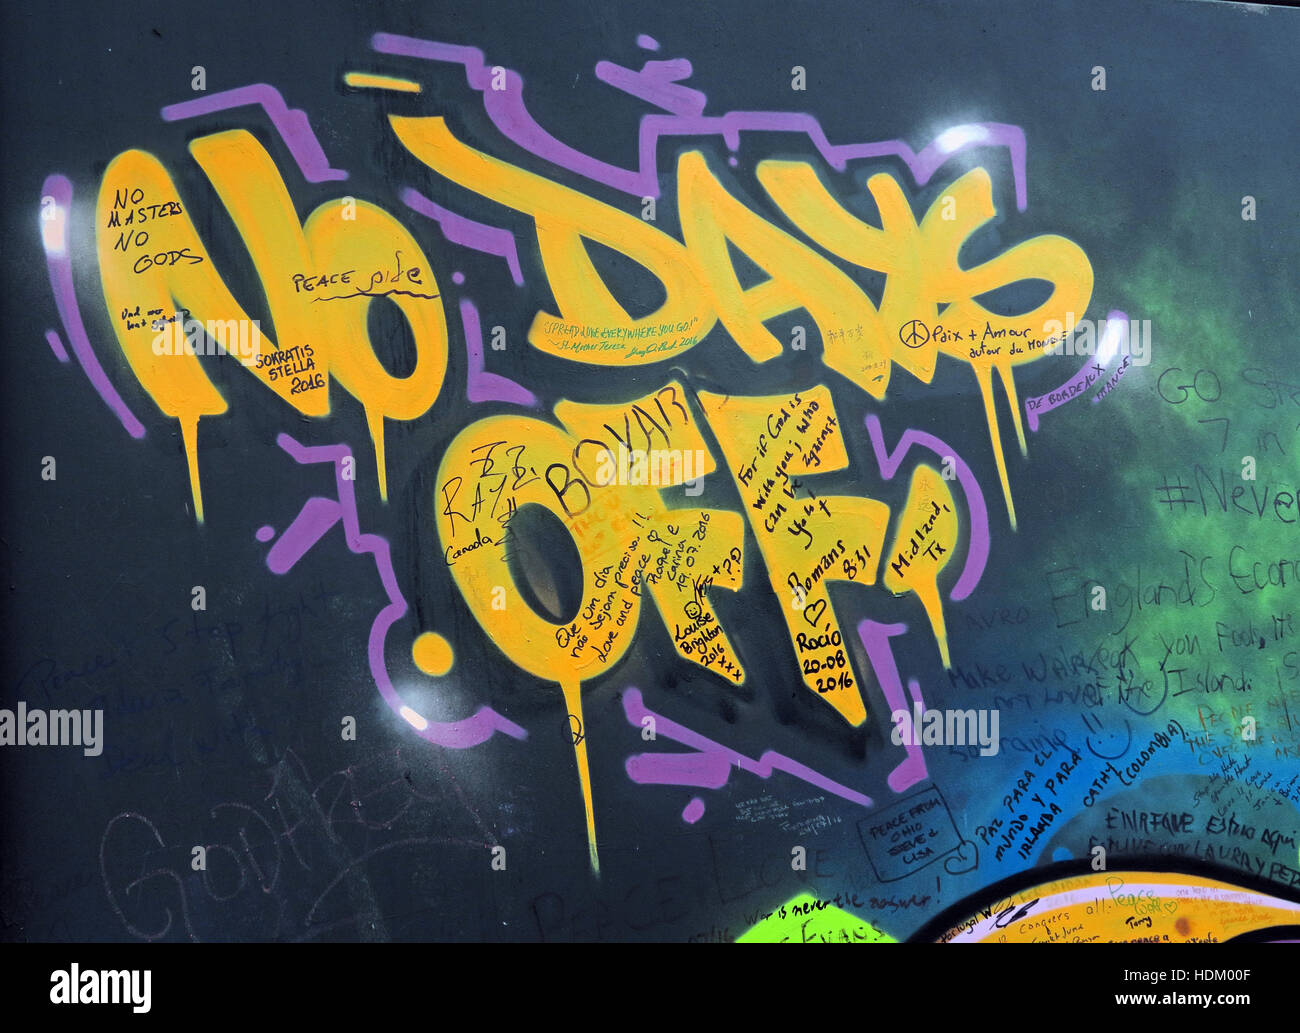 Northern Ireland,Peace,Wall,Cupar way,West Belfast,Belfast,Irish,art,artworks,artwork,tag,tagged,graffitti,grafitti,No,Days,Off,art,work,artwork,Berlin wall,Team No Days Off,GoTonySmith,@HotpixUK,Tony,Smith,UK,GB,Great,Britain,United,Kingdom,Irish,British,Ireland,problem,with,problem with,issue with,NI,Northern,Northern Ireland,Belfast,City,Centre,Art,Artists,the,troubles,The Troubles,Good Friday Agreement,Peace,honour,painting,wall,walls,tribute,Unionist,unionism,Protestant,Catholic,republican,Sinn Fein,community,Fight,Justice,West,Beal,feirste,martyrs,social,tour,tourism,tourists,urban,six,counties,6,backdrop,county,Antrim,UVF,DUP,British,GB,Empire,Buy Pictures of,Buy Images Of,Images of,Stock Images,Tony Smith,United Kingdom,Great Britain,British Isles,Belfast protestant community,Peoples army,Belfast catholic community,Irelands Berlin wall